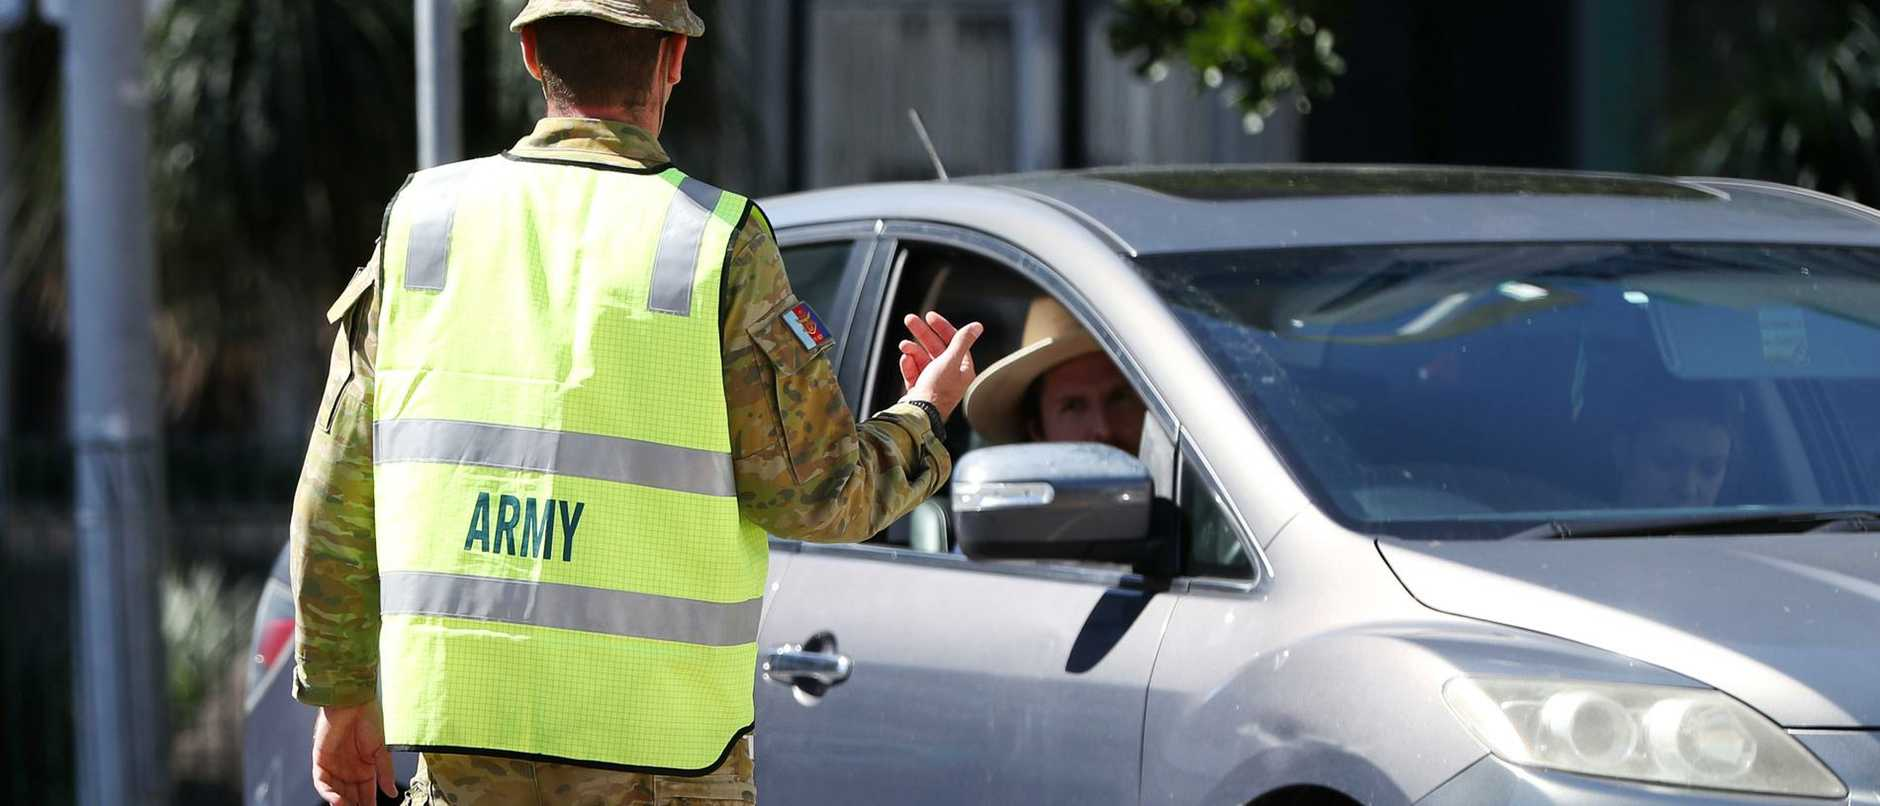 Motorists have been warned to expect long delays at the border later this week when the departure of ADF personnel coincides with a partial border opening.